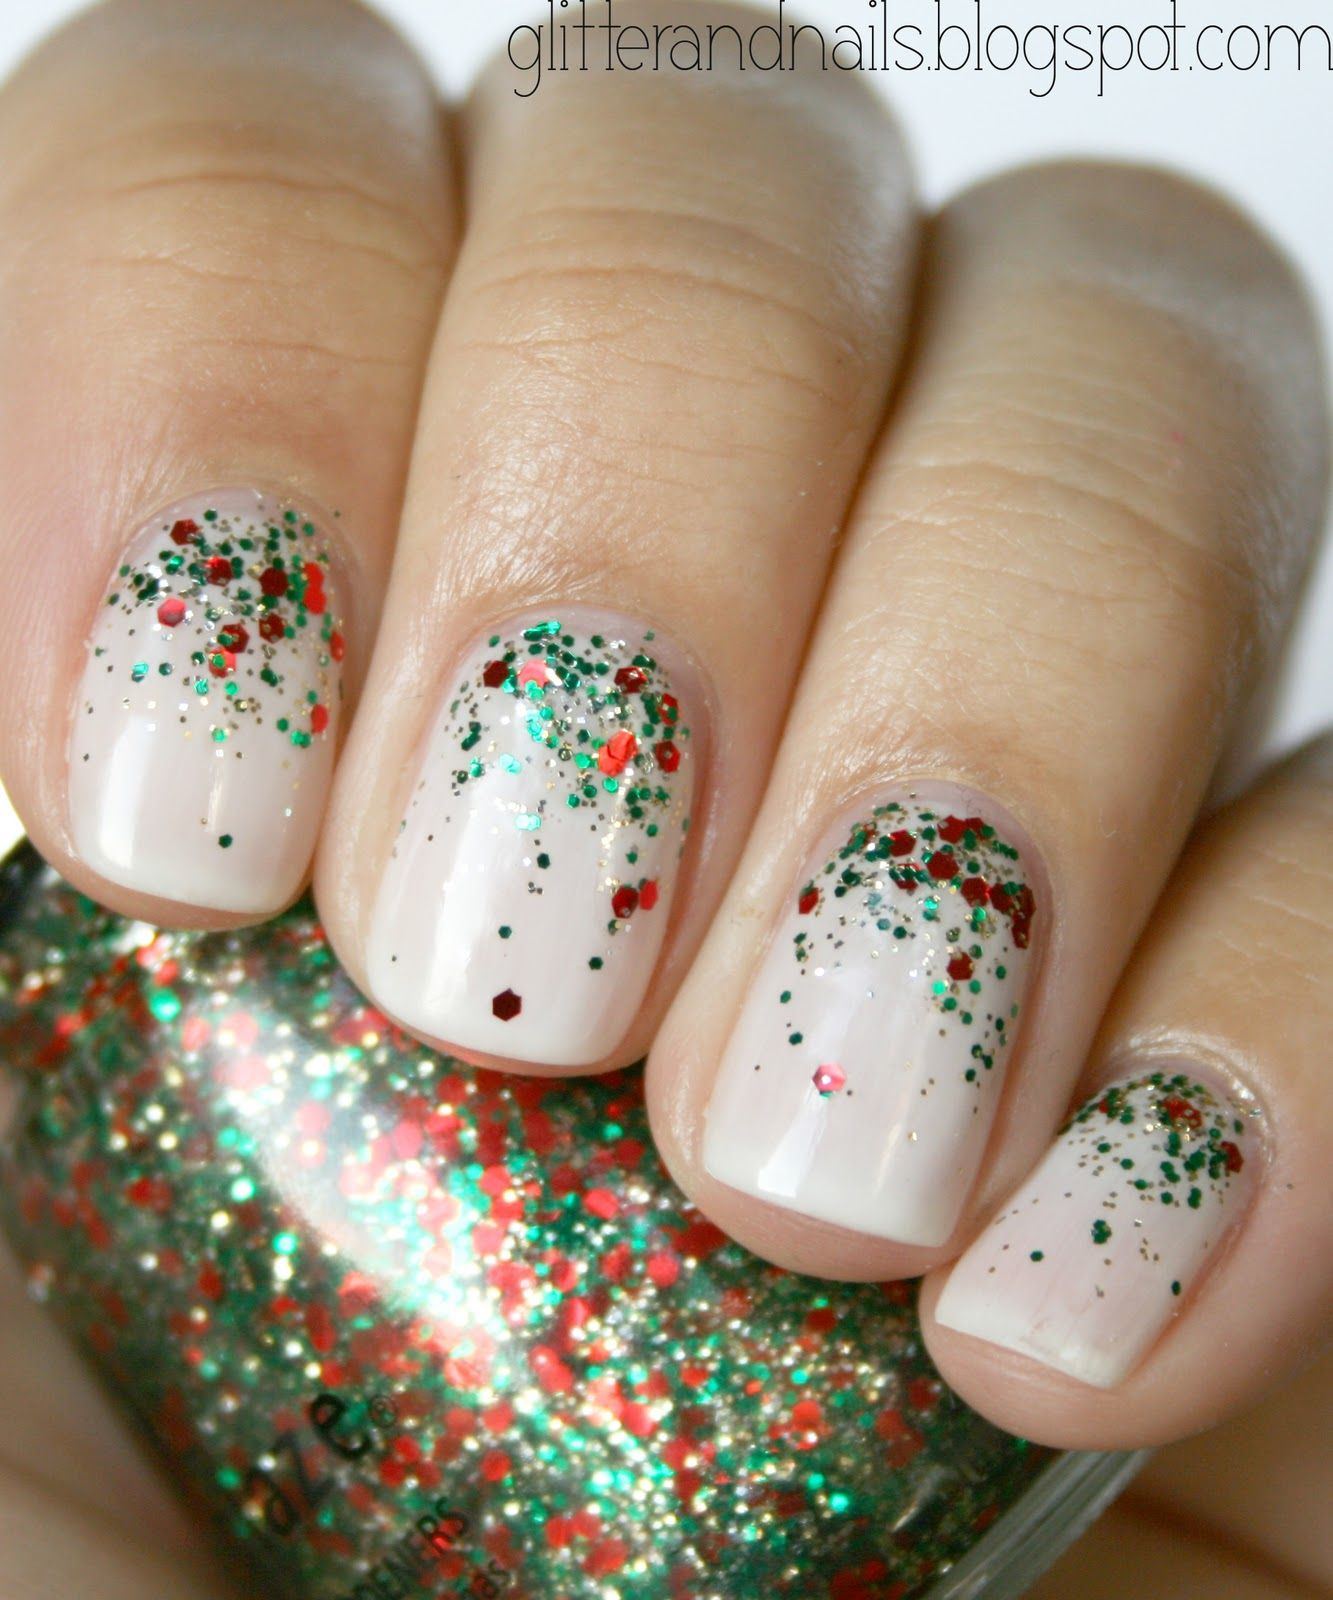 Christmas nails, could do this for any season.